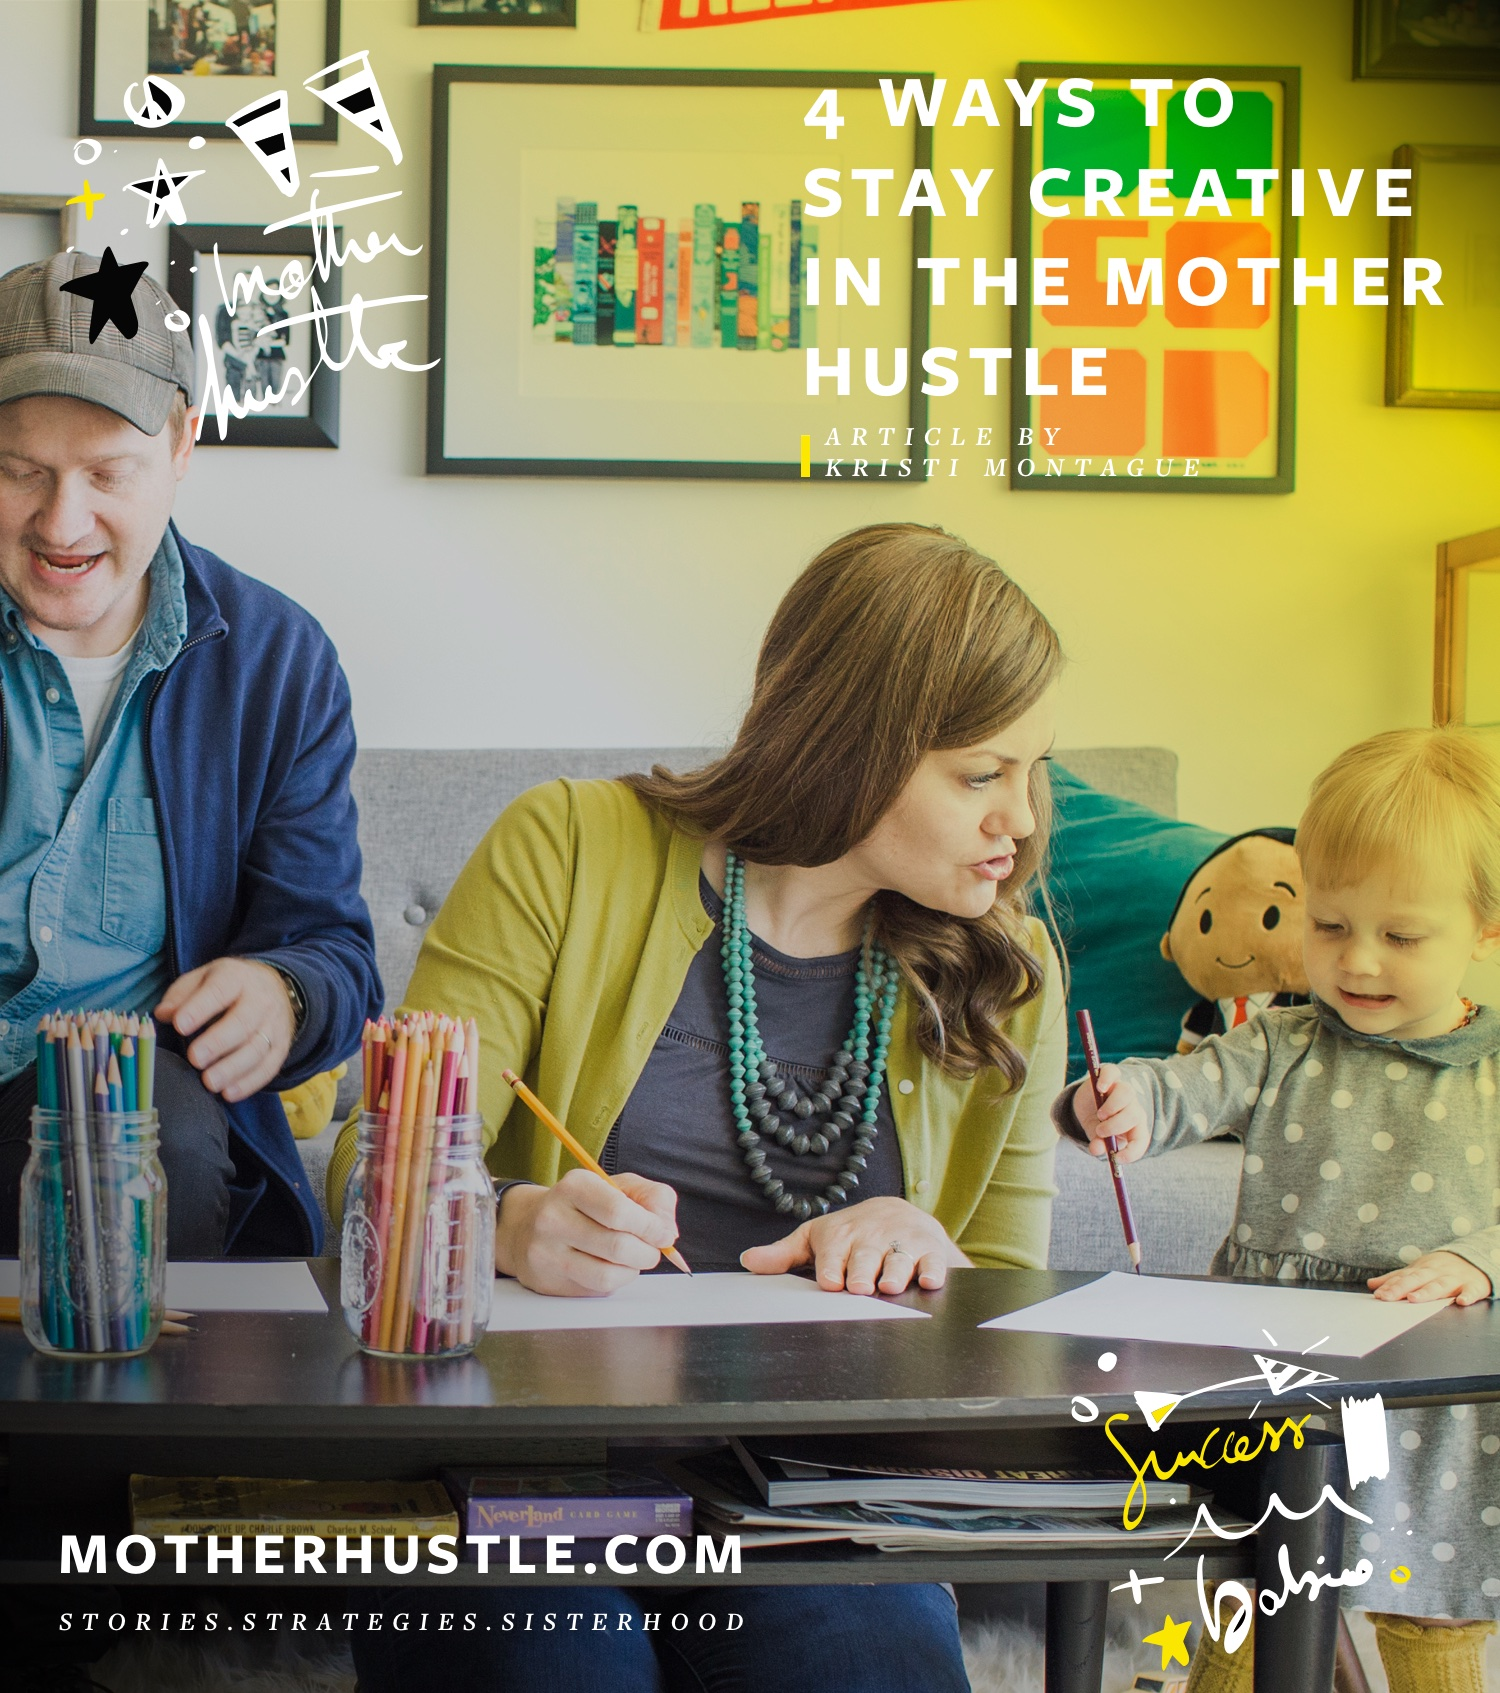 4 Ways to Stay Creative in the #MotherHustle